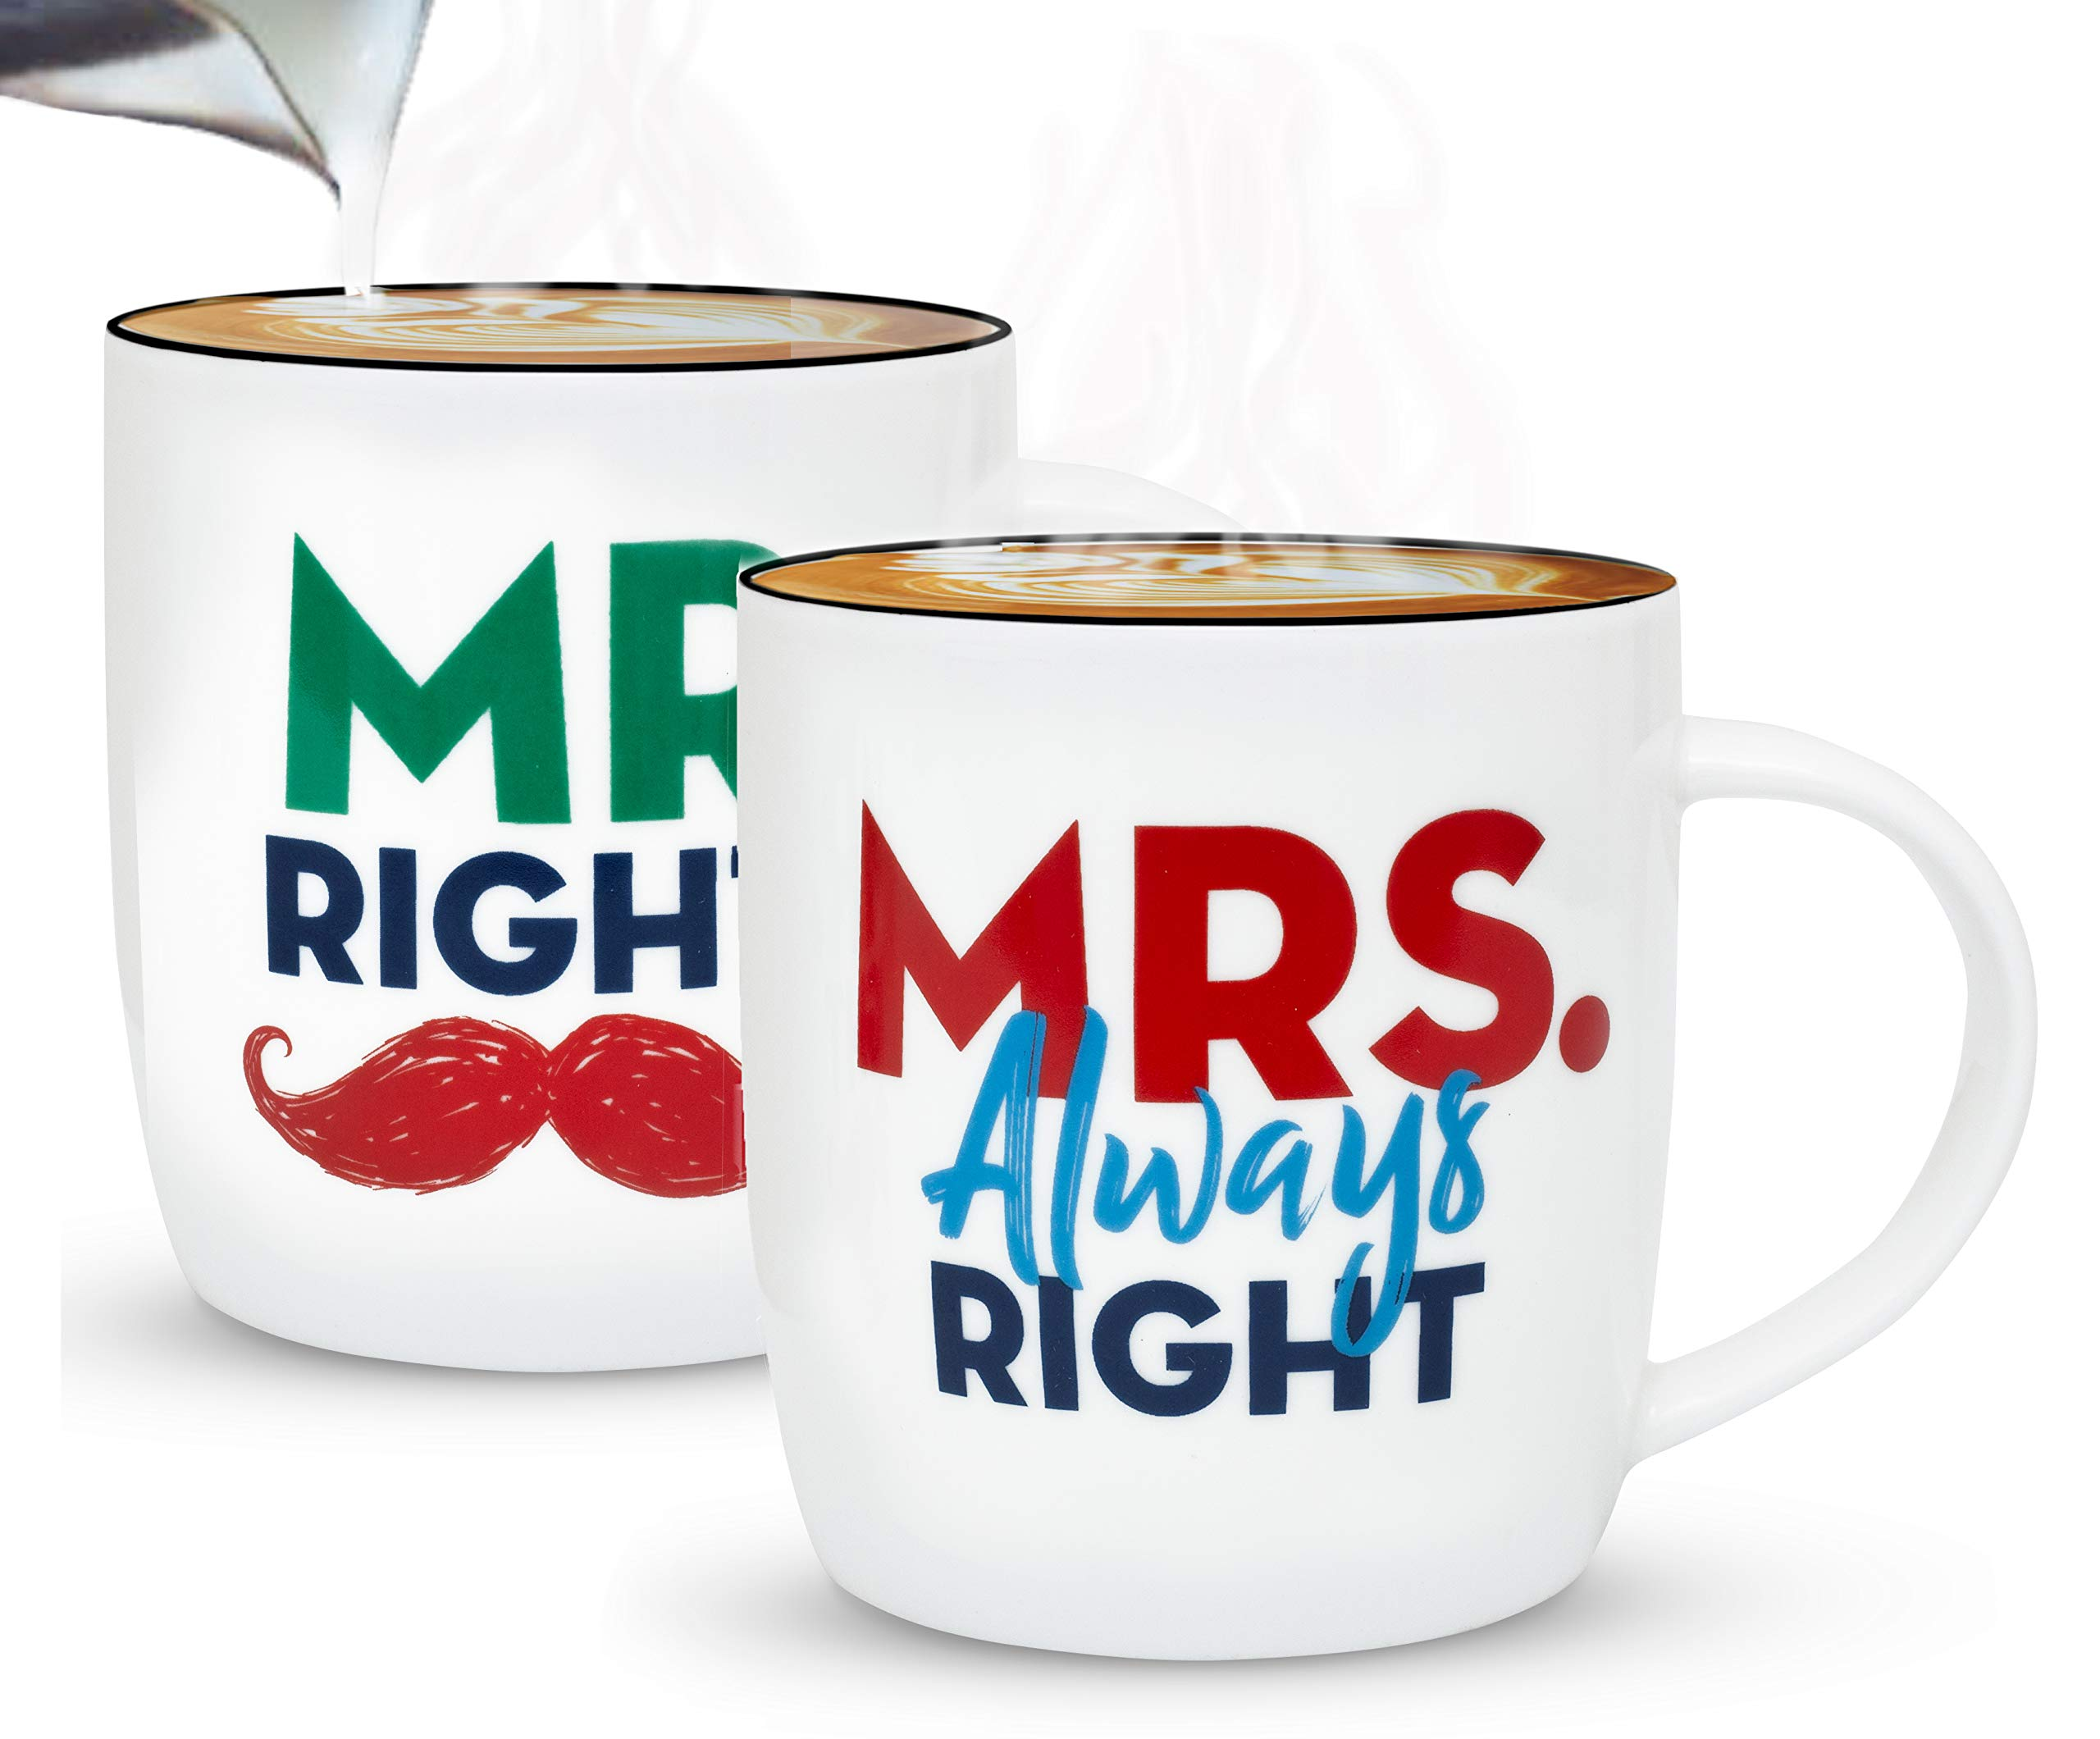 Triple Gifffted Mr Right and Mrs Always Right Coffee Mugs, Couples Gifts Set For Wedding Anniversary and Engagement, Funny Couple Valentines Day Gift For Her, Christmas, Bride Groom Men Women, Cups